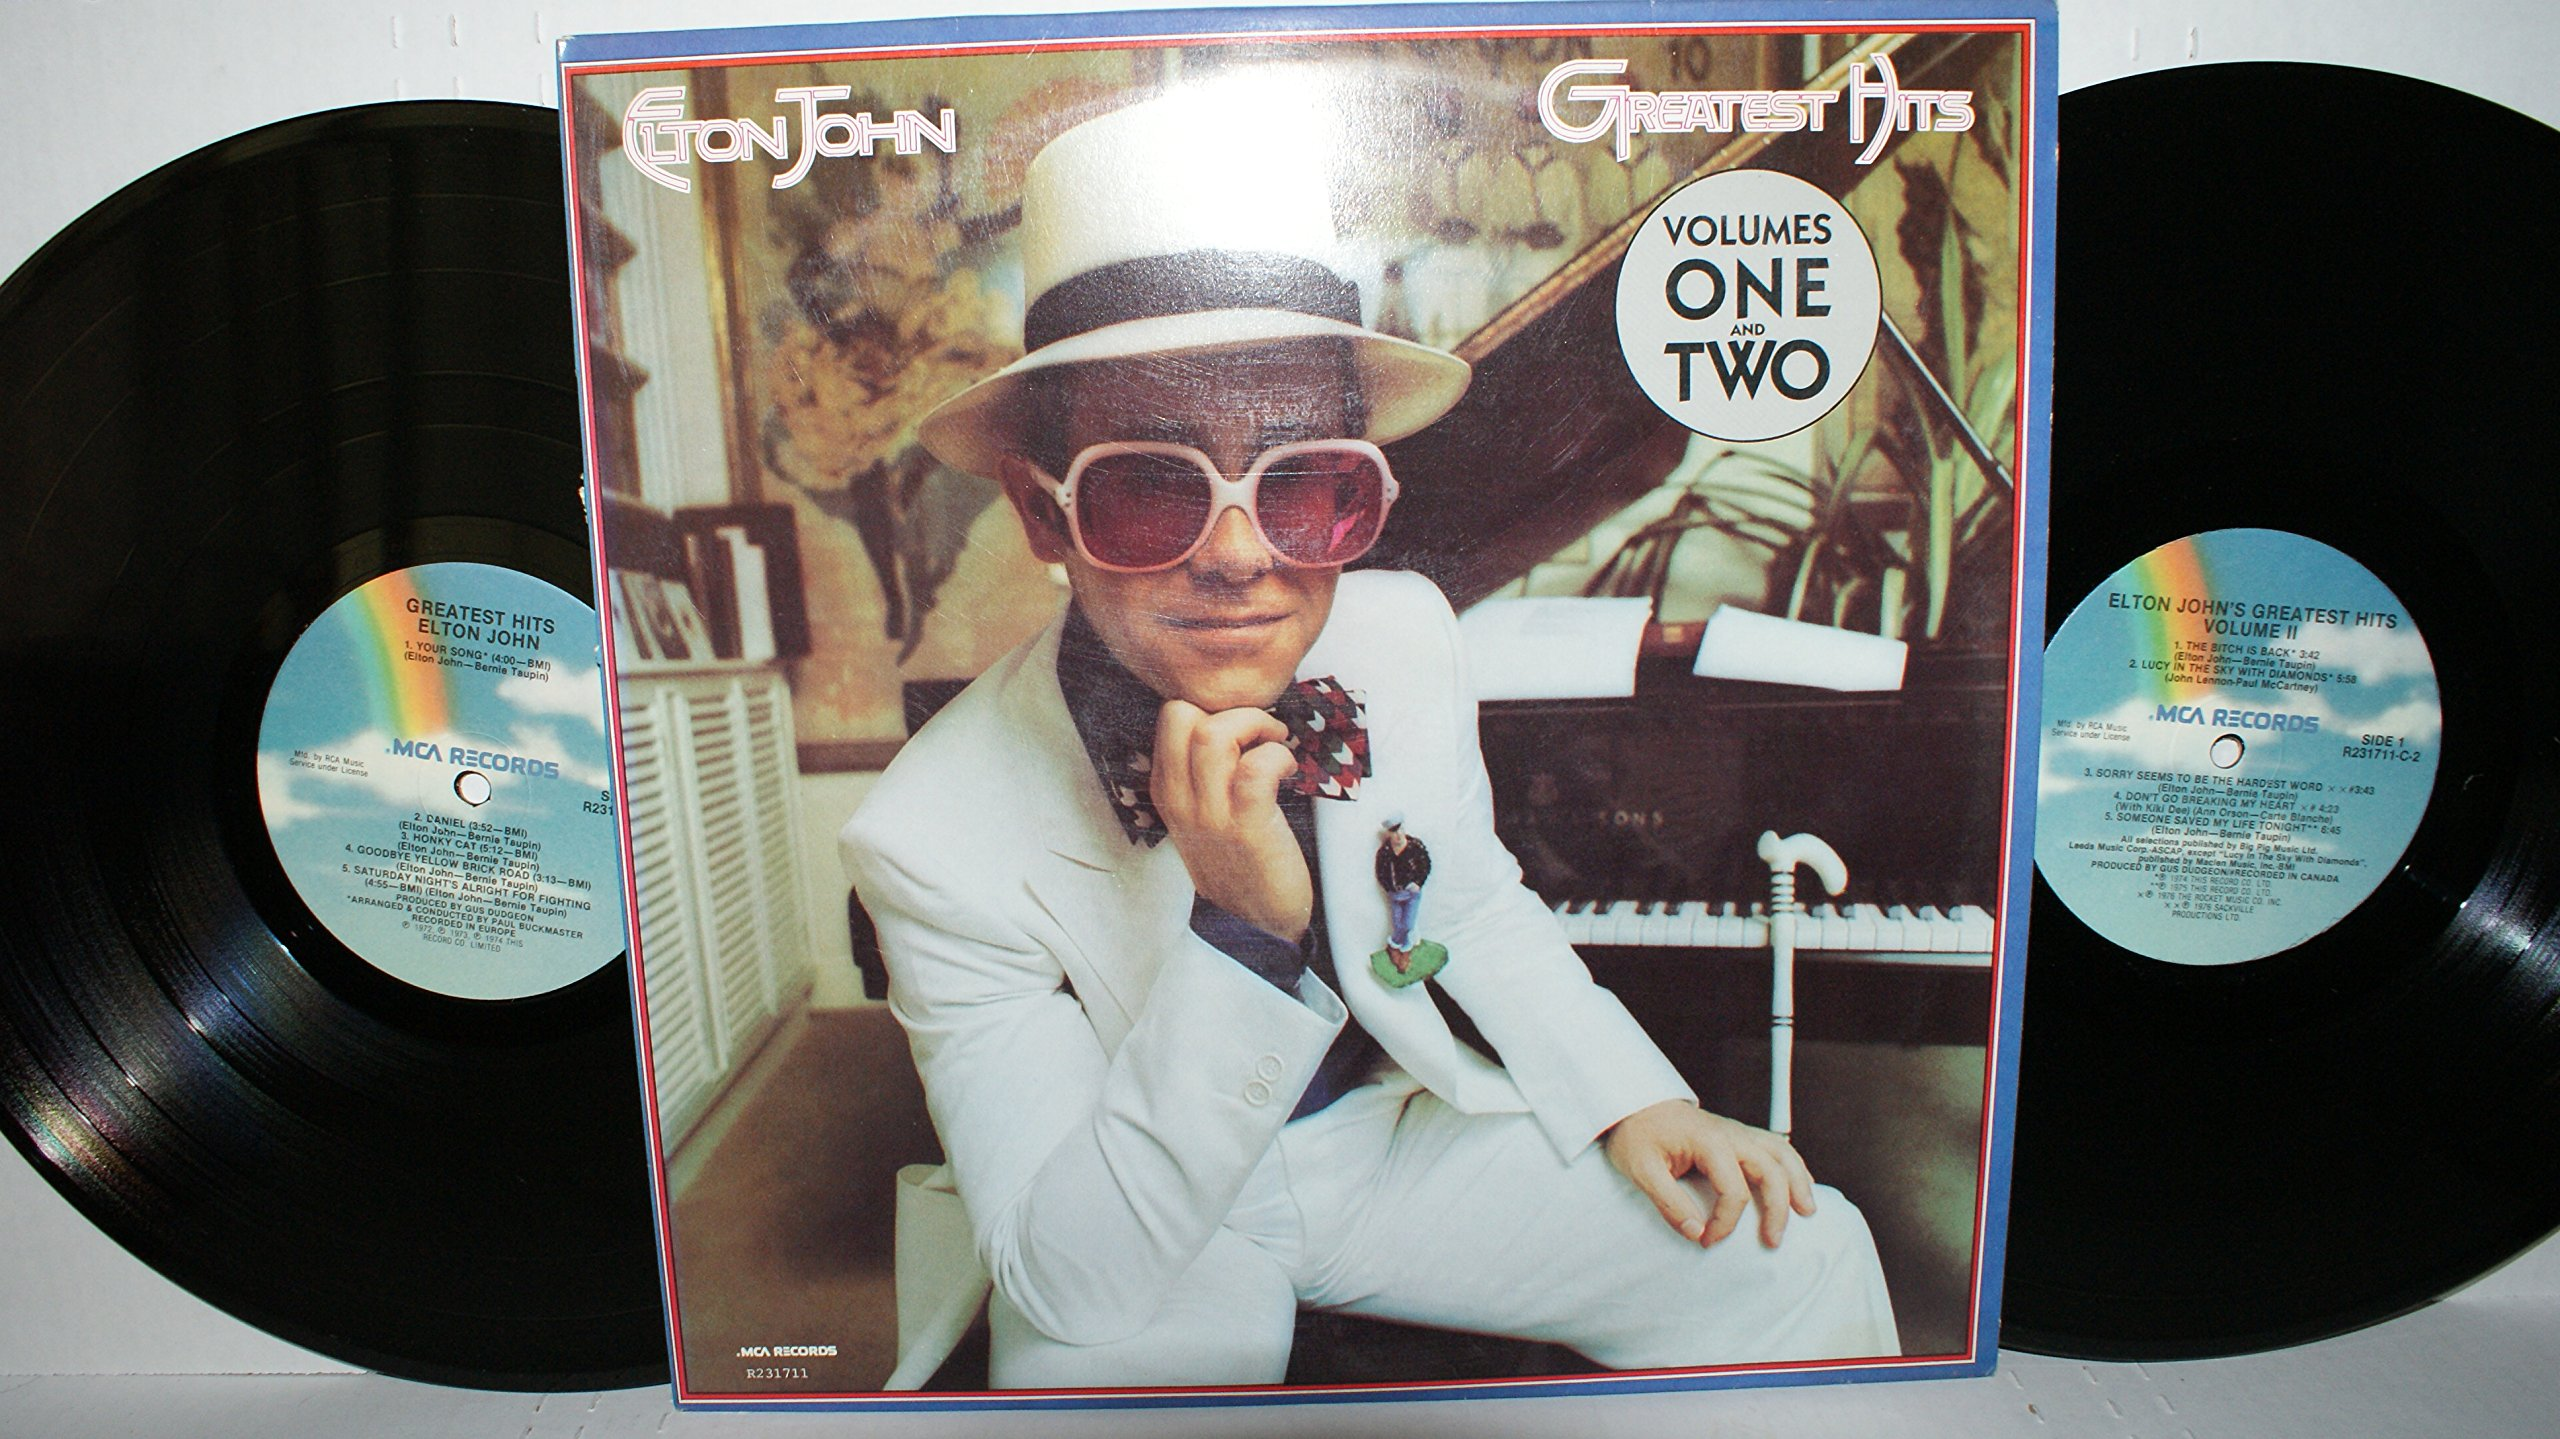 Elton John Greatest Hits Volumes One and Two by MCA